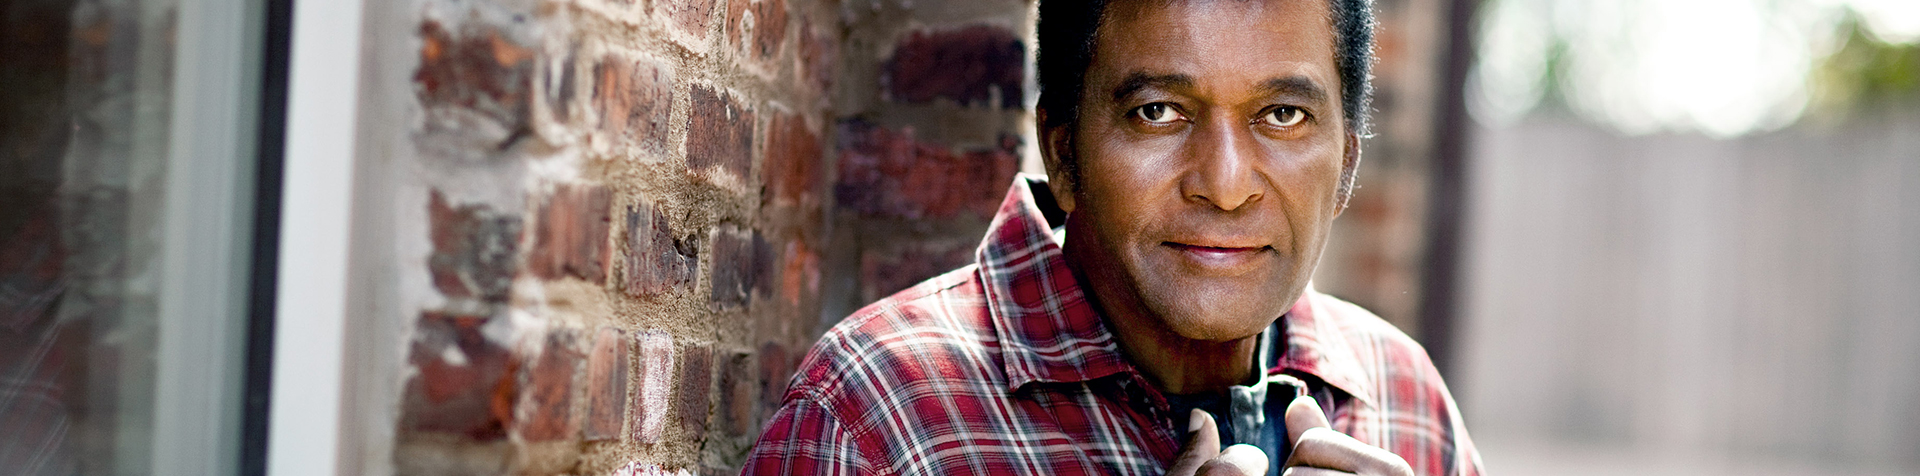 Entertainment - Pavilion - Charley Pride